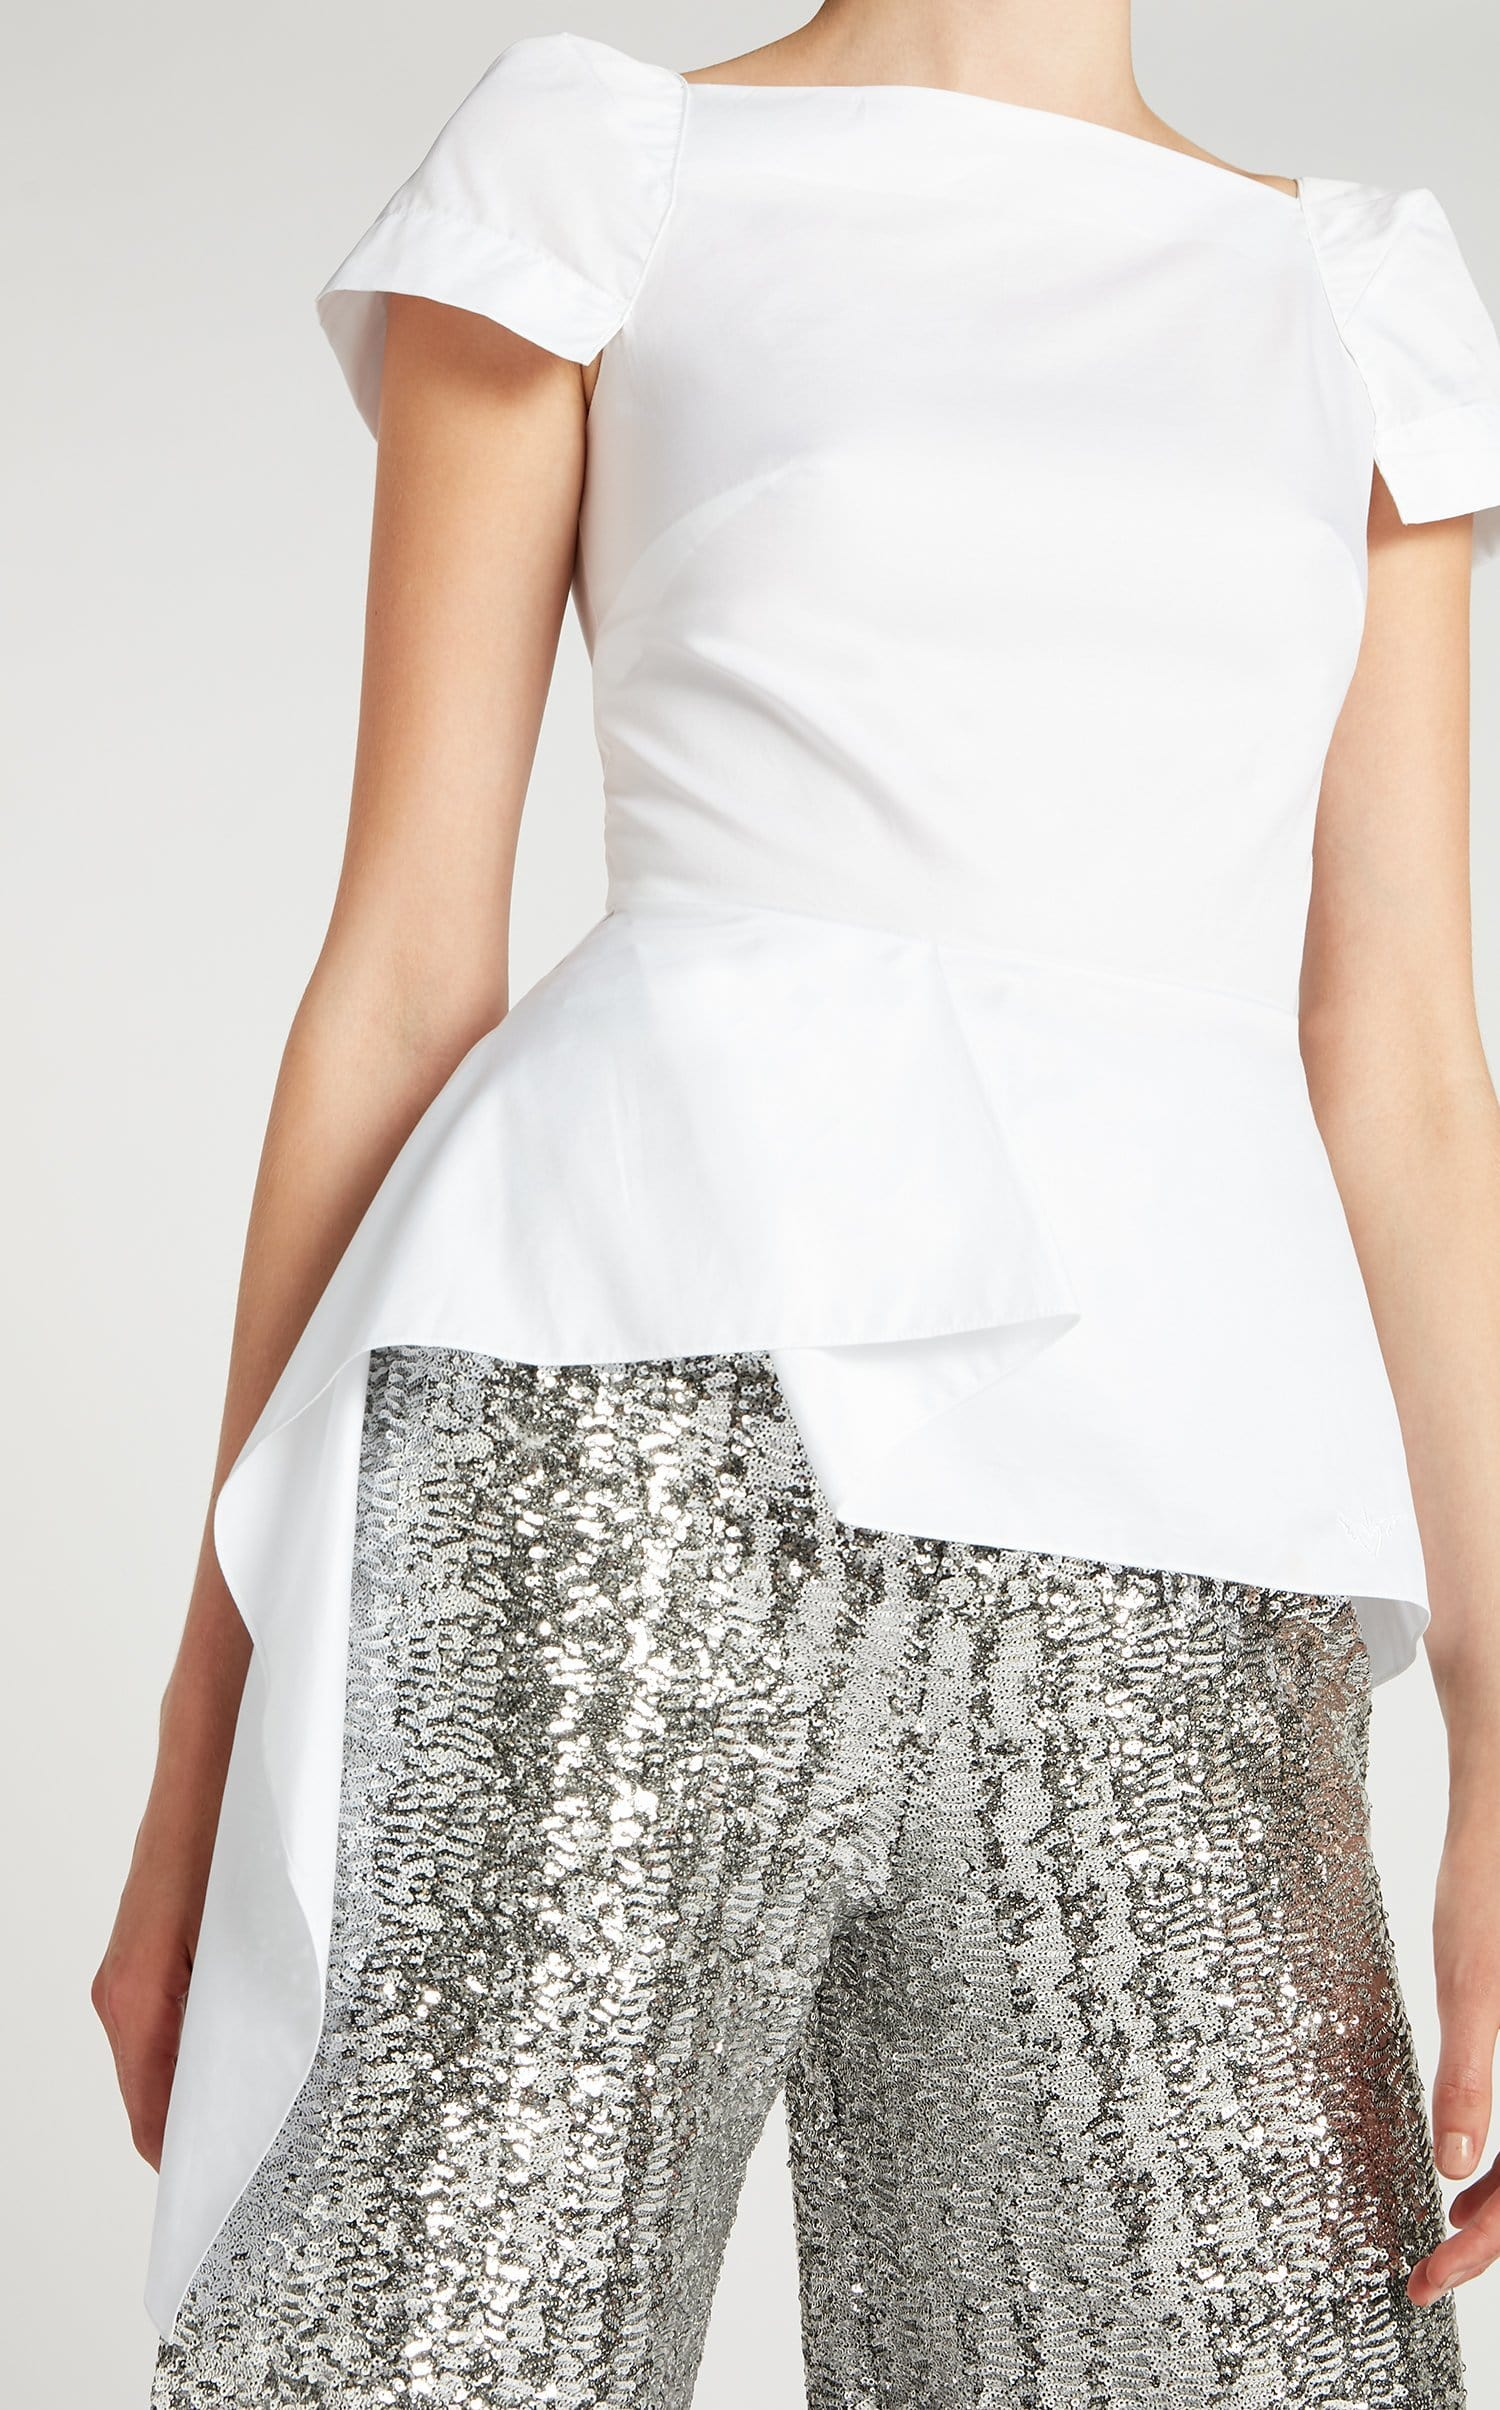 Newhall Top In White from Roland Mouret